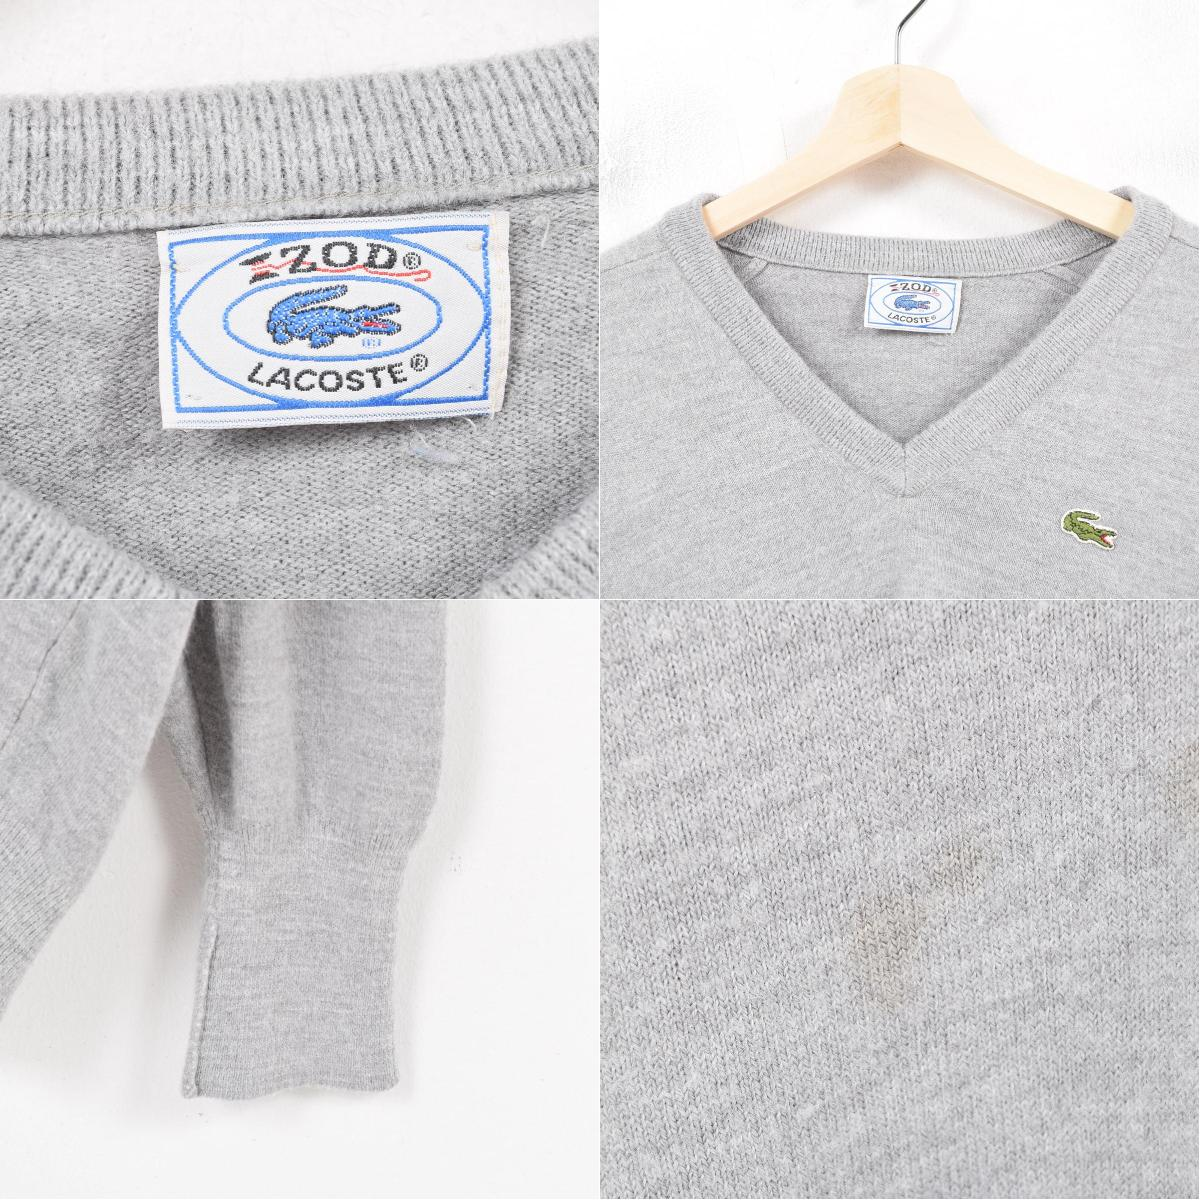 2161803a 70-80 generation Lacoste LACOSTE IZOD V neck acrylic knit sweater men M  vintage /wap8108